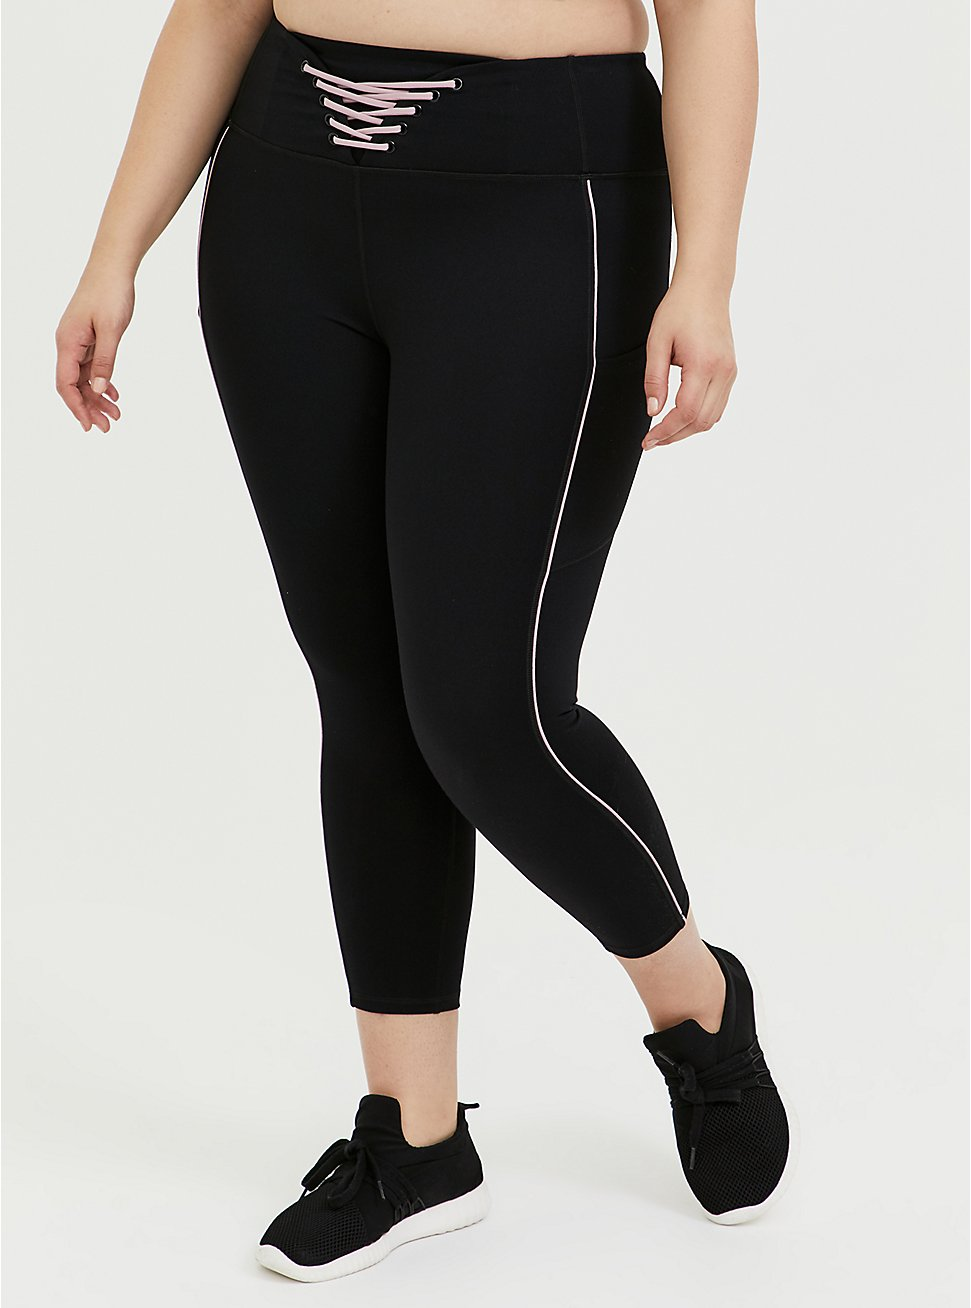 Black & Pink Lattice Front Crop Wicking Active Legging with Pockets, DEEP BLACK, hi-res